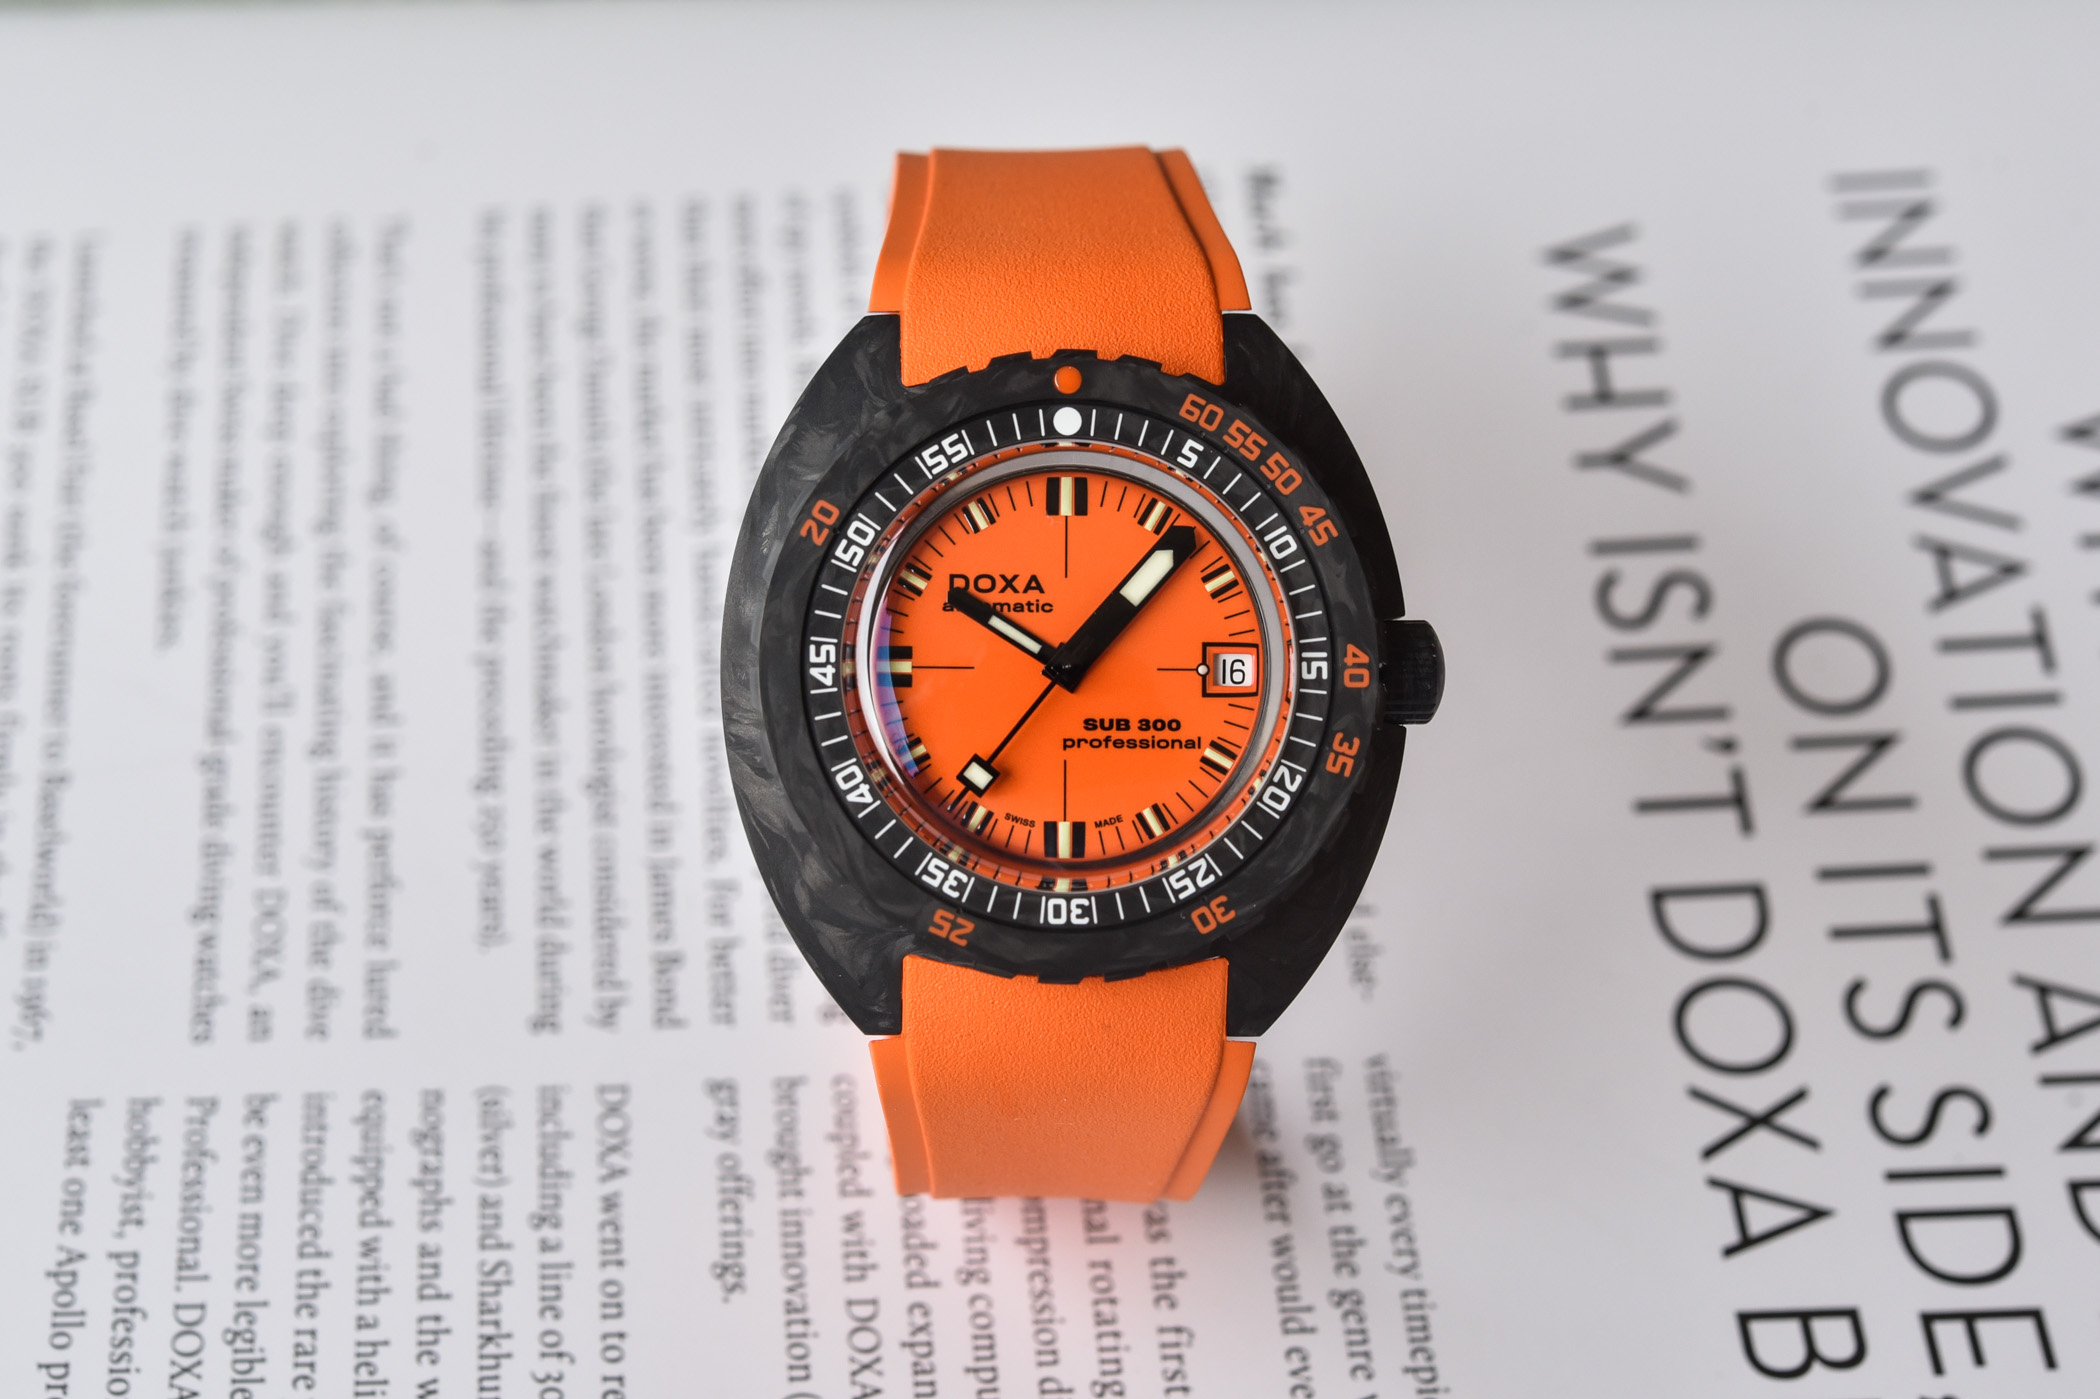 Doxa-SUB-300-Carbon-COSC-Collection-2021-review-12.jpg